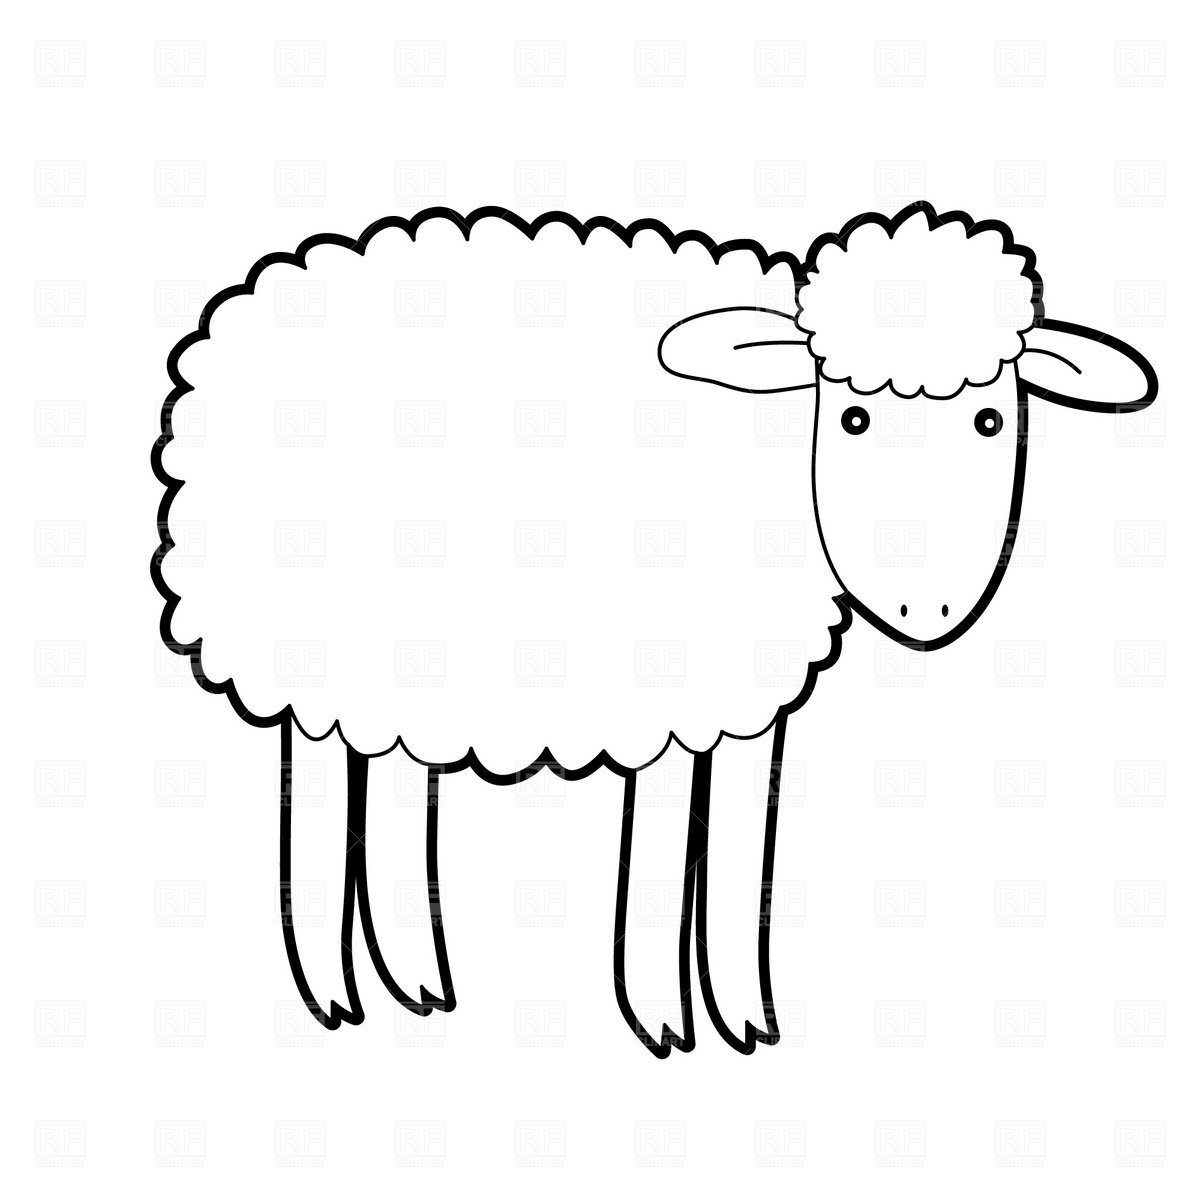 lamb clipart black and white clipart panda free clipart images rh clipartpanda com free sheep clipart the 99 free sheep clip art images